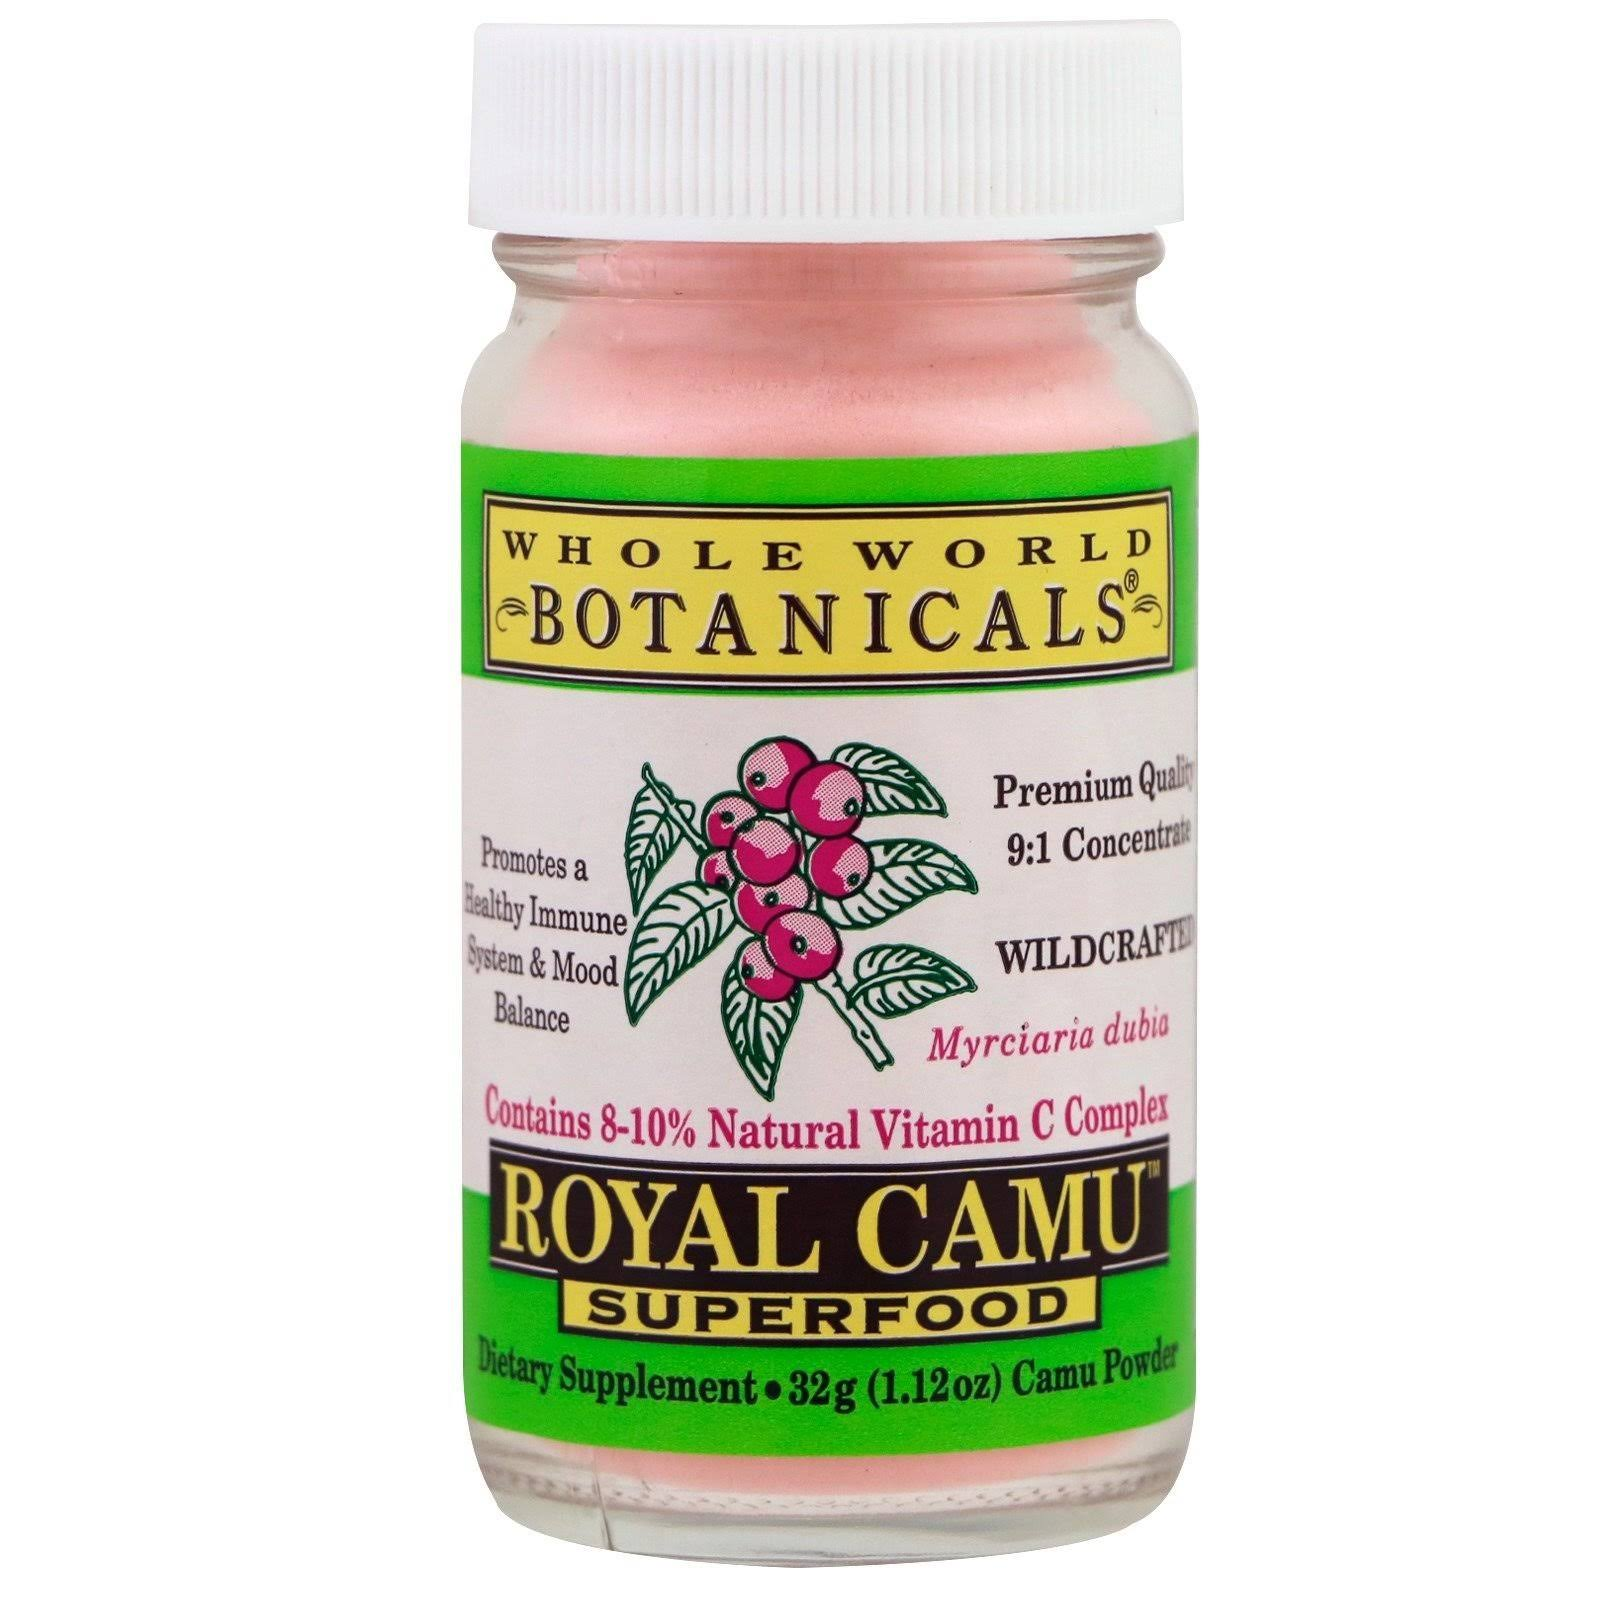 Whole World Botanicals Royal Camu Superfood - 1.12 oz jar